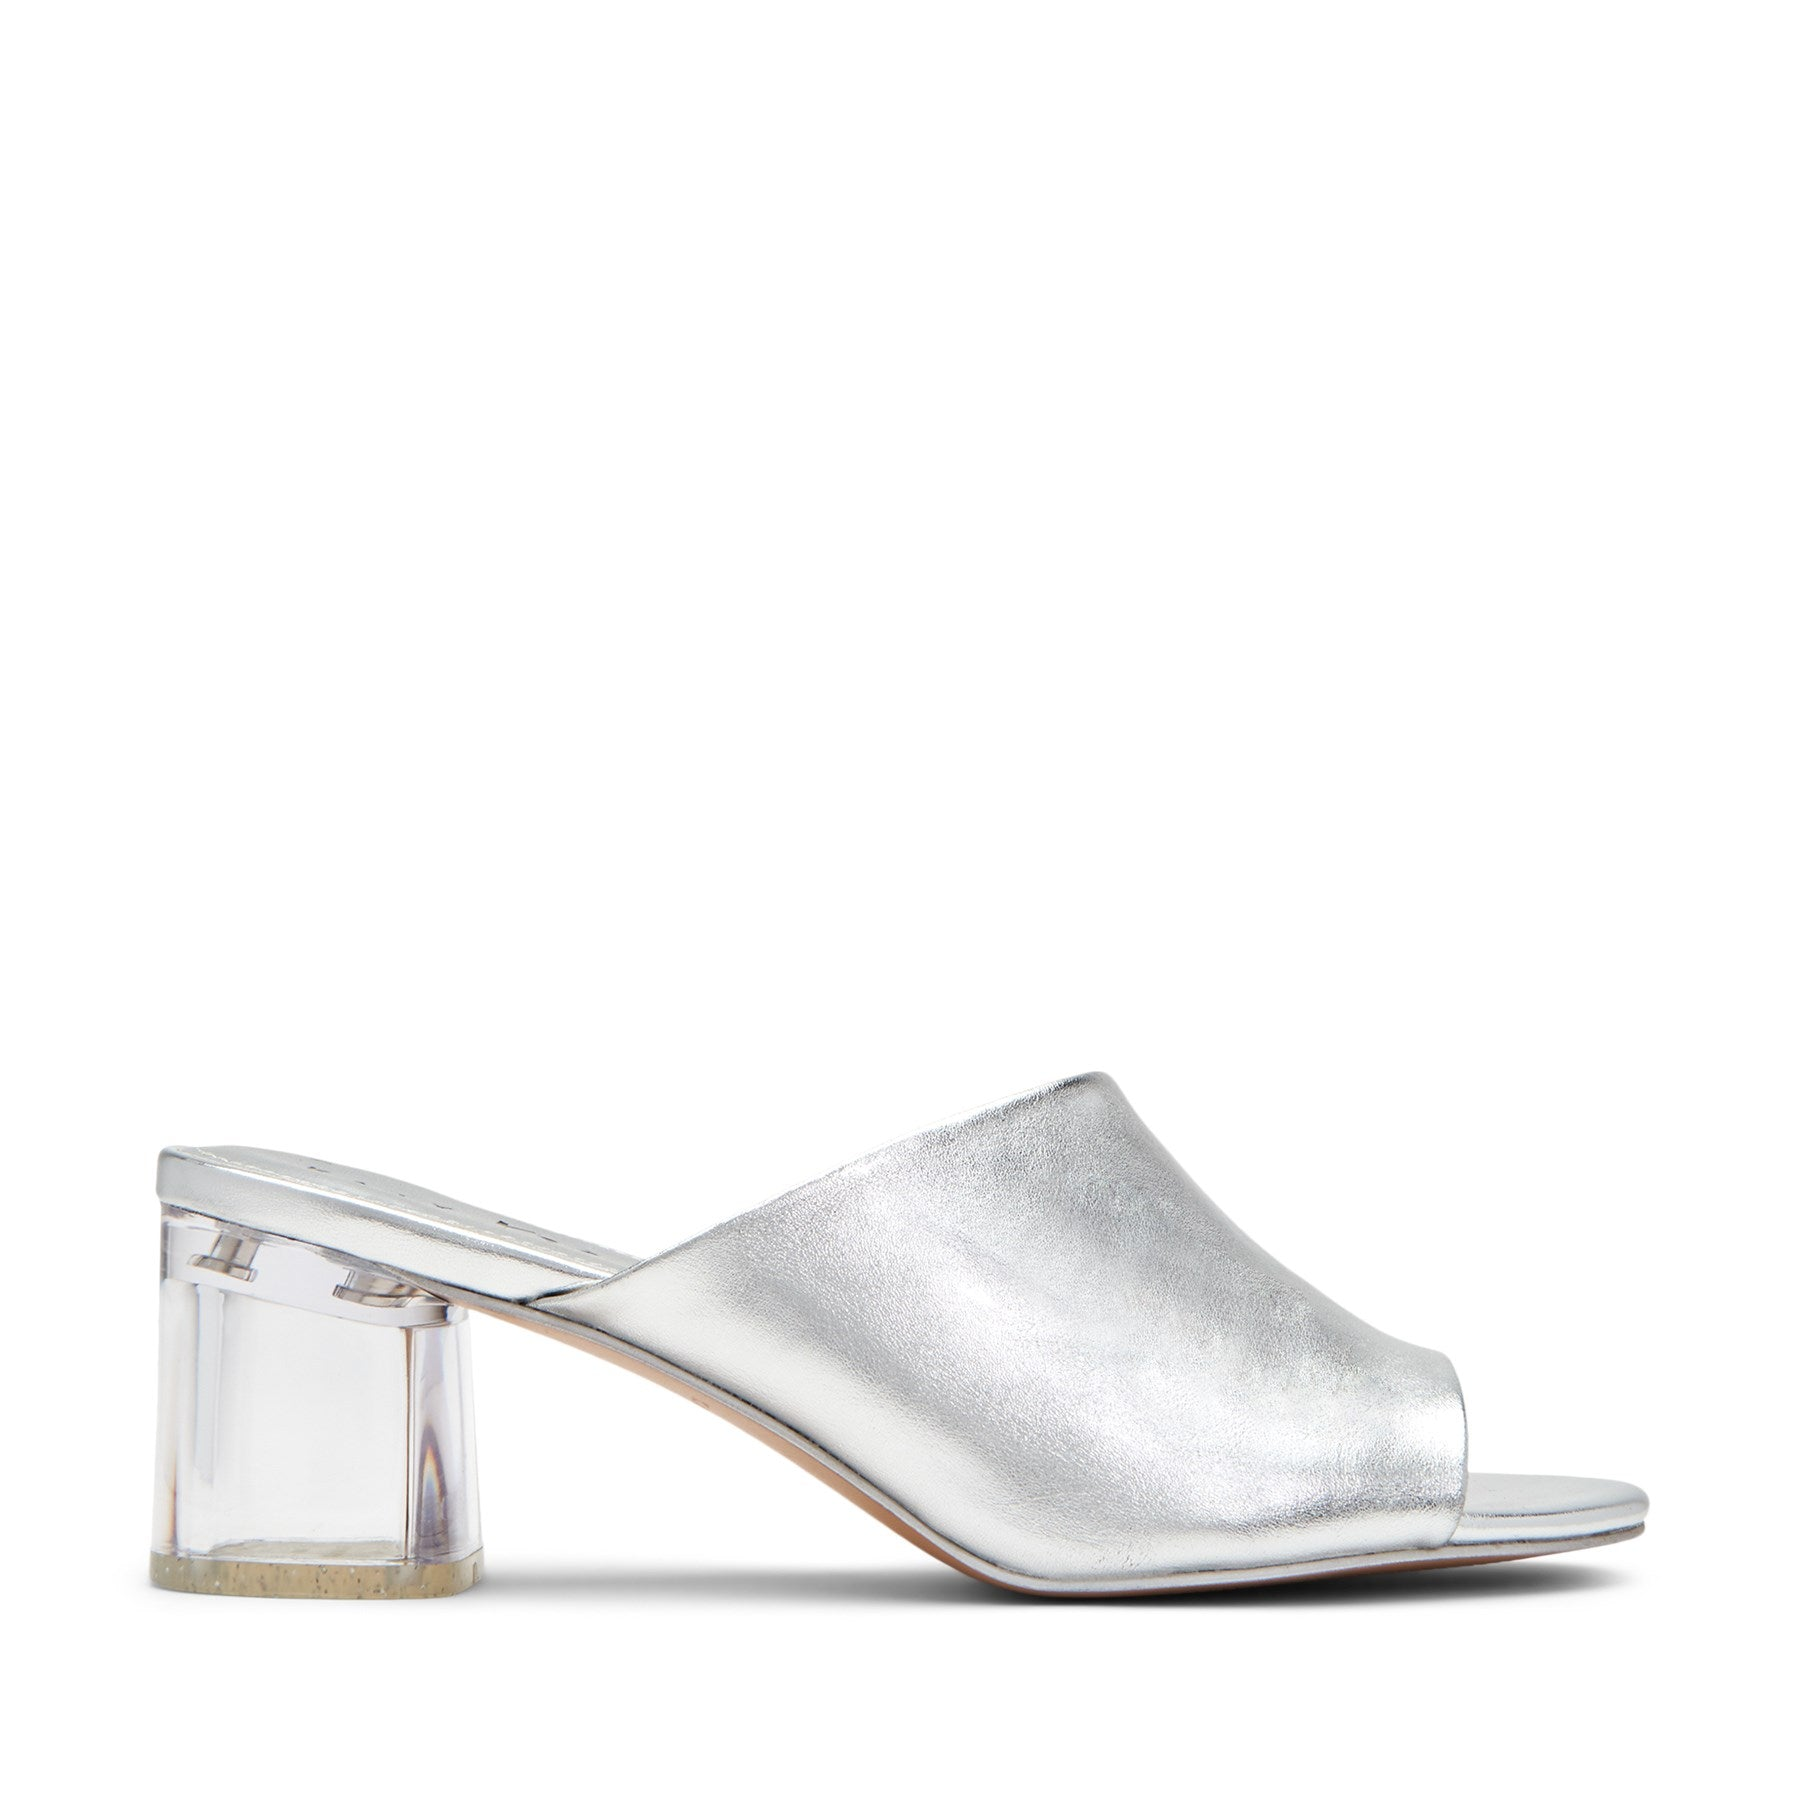 katy perry heeled mule metallic in silver size 5.5   the landen